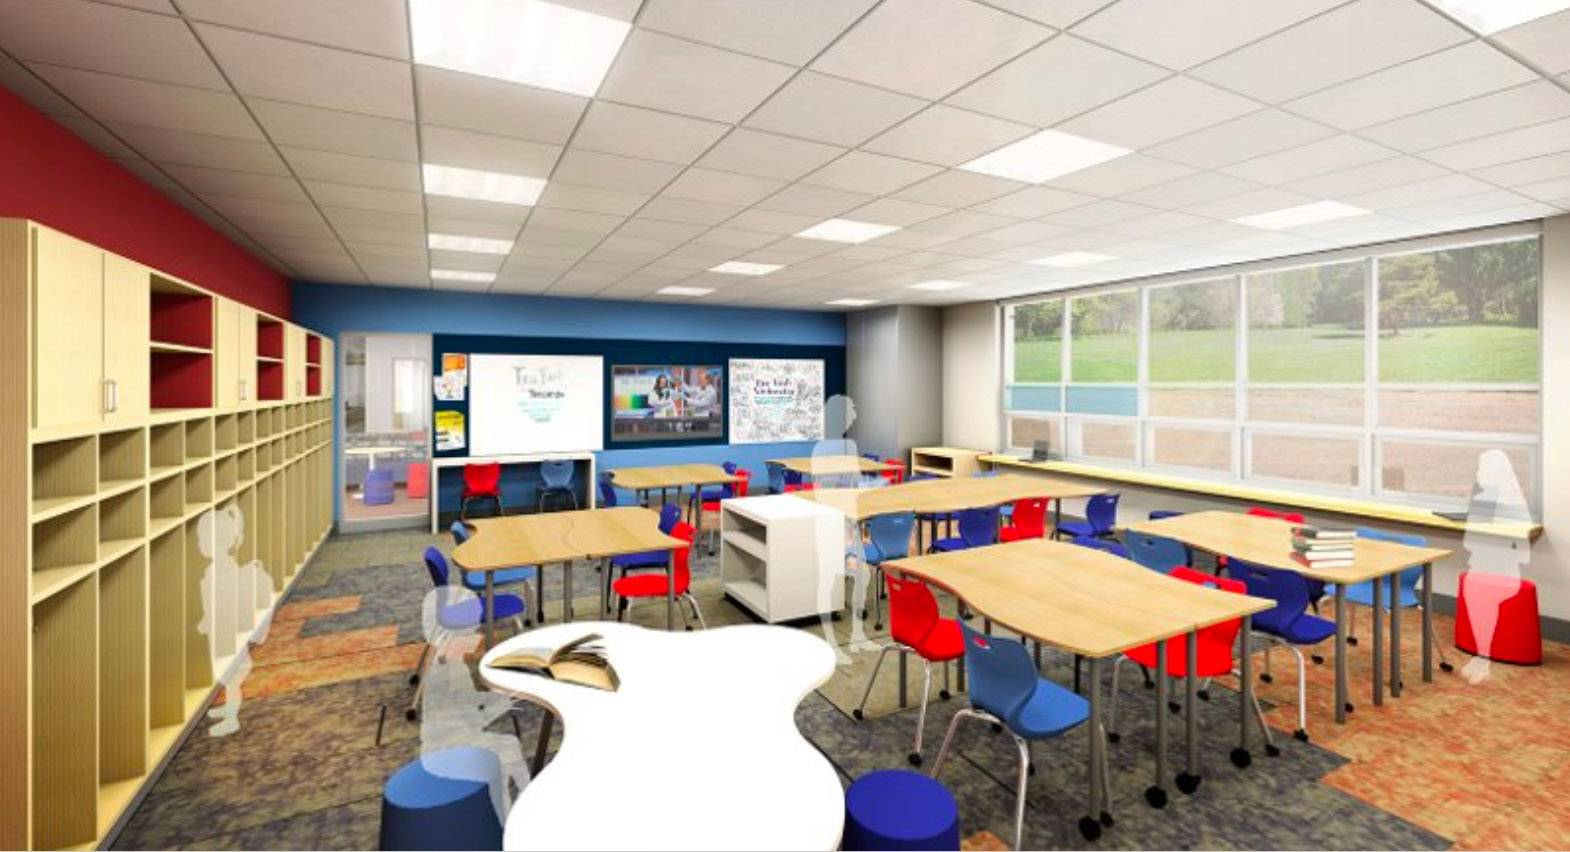 A rendering shows a planned classroom at Oakland Elementary School in Antioch District 34. The addition is part of $26 million in upgrades at a pair of elementary schools.